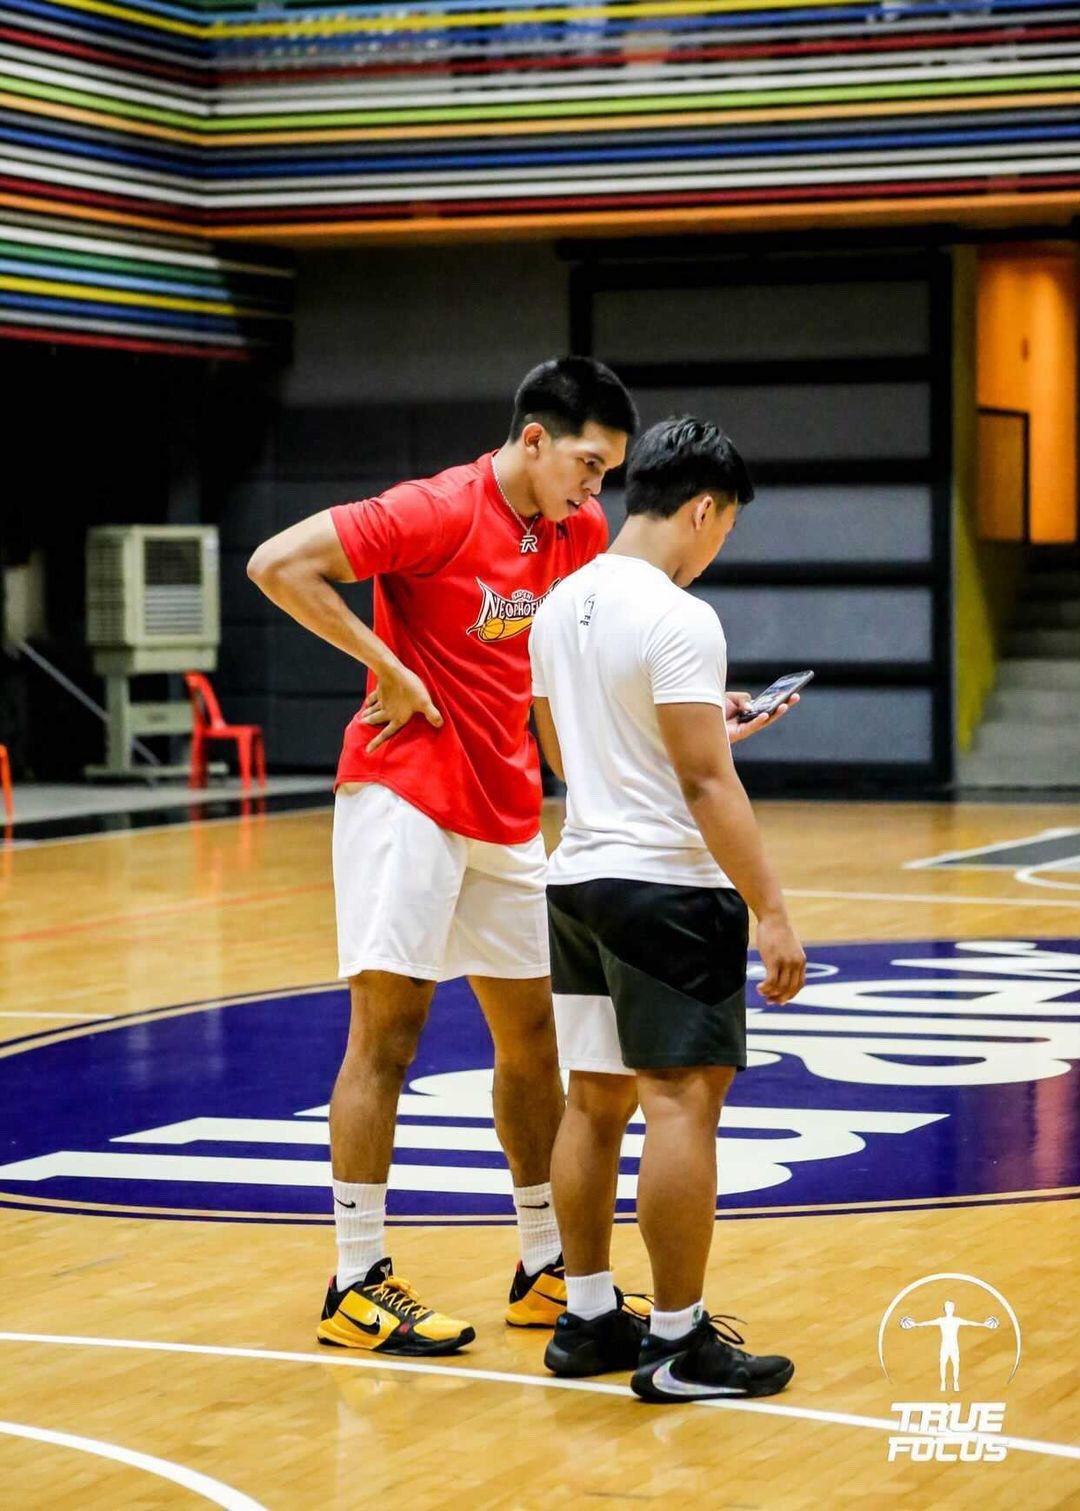 Trainer Jolo Tamayo of True Focus trains with Thirdy Ravena.